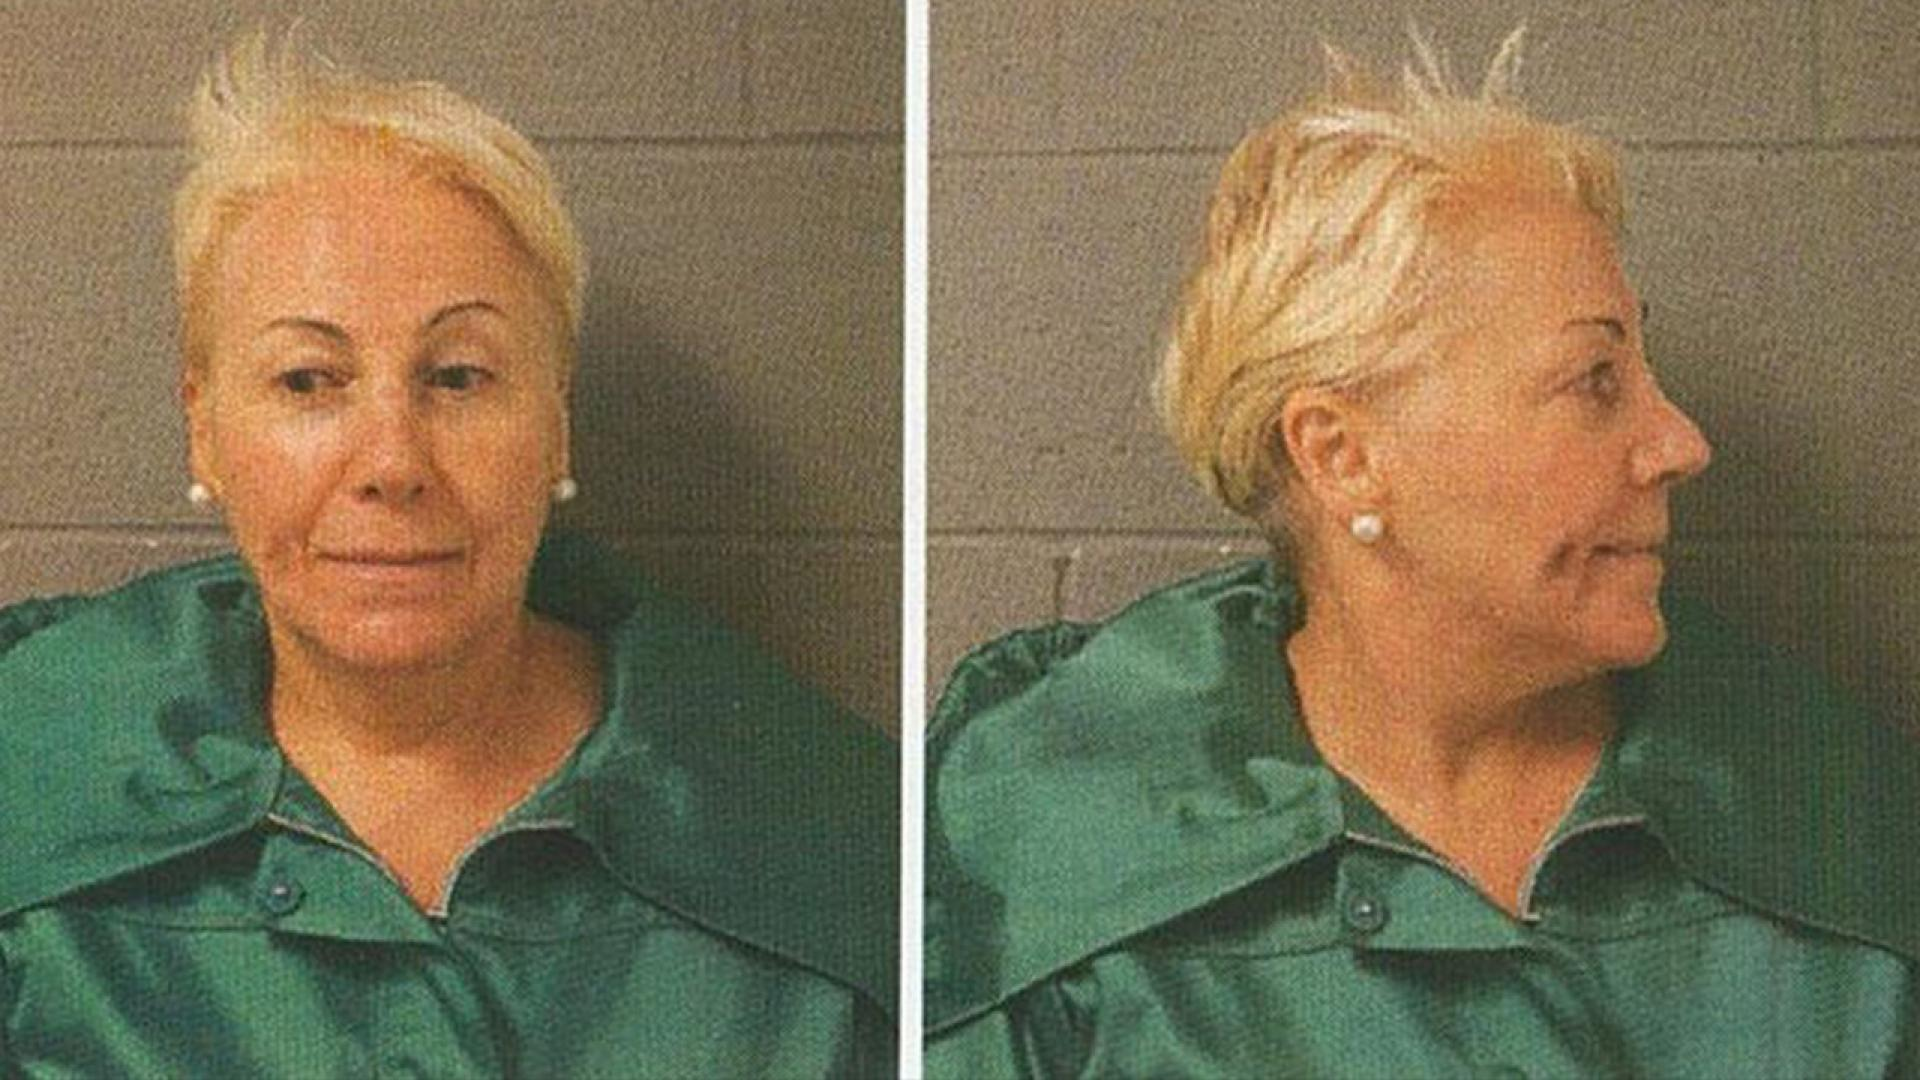 Irene Donoshaytis, 65, a Northfield resident, was charged with a hate crime.